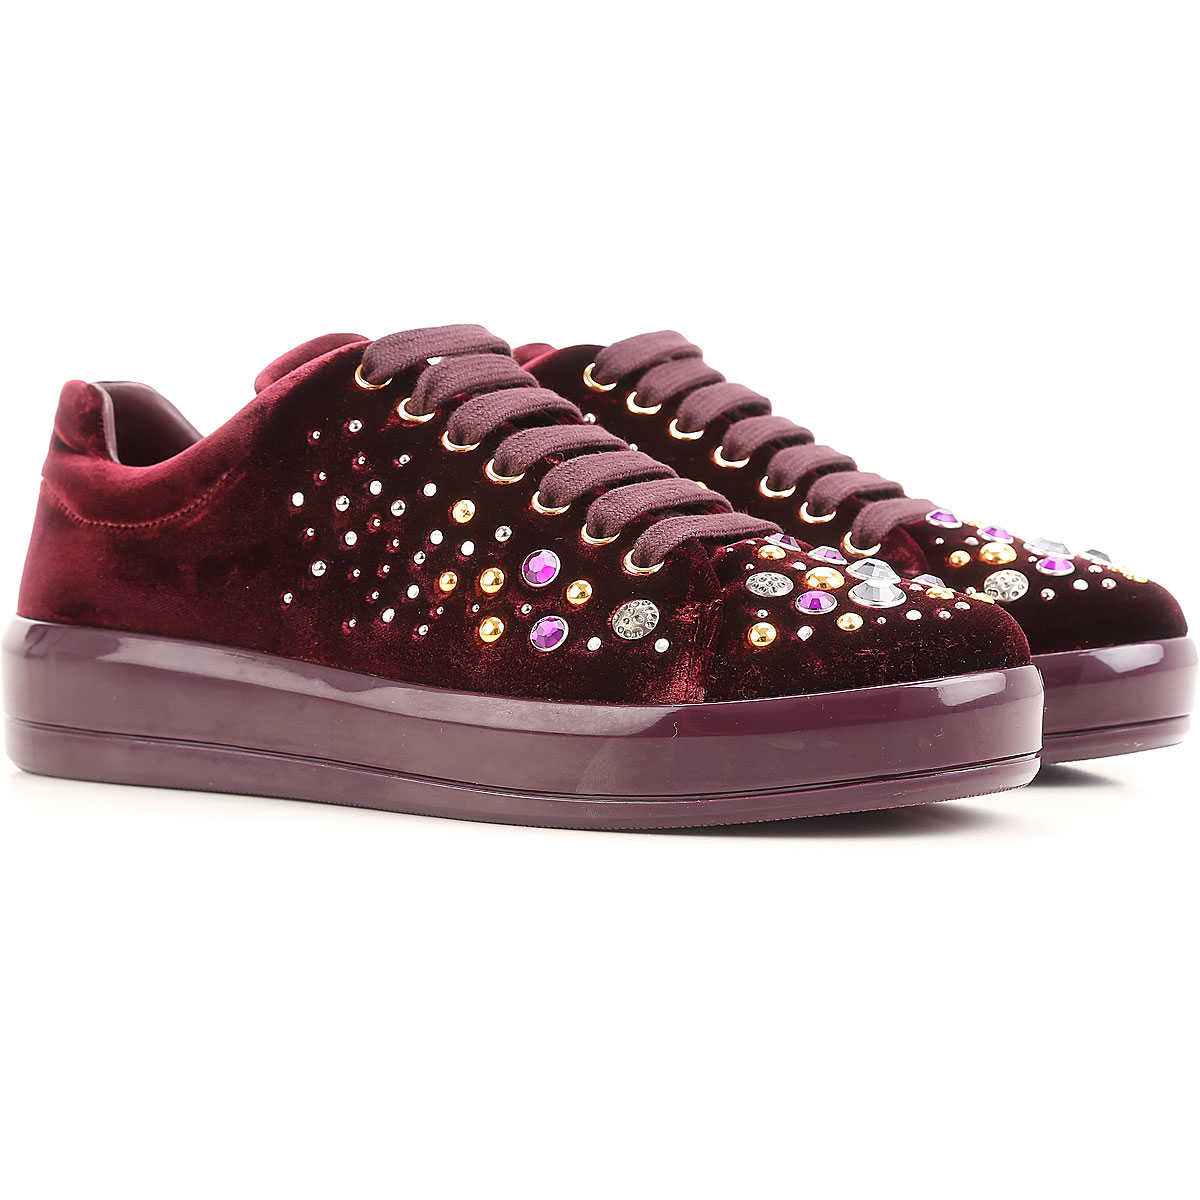 Prada Sneakers for Women On Sale in Outlet